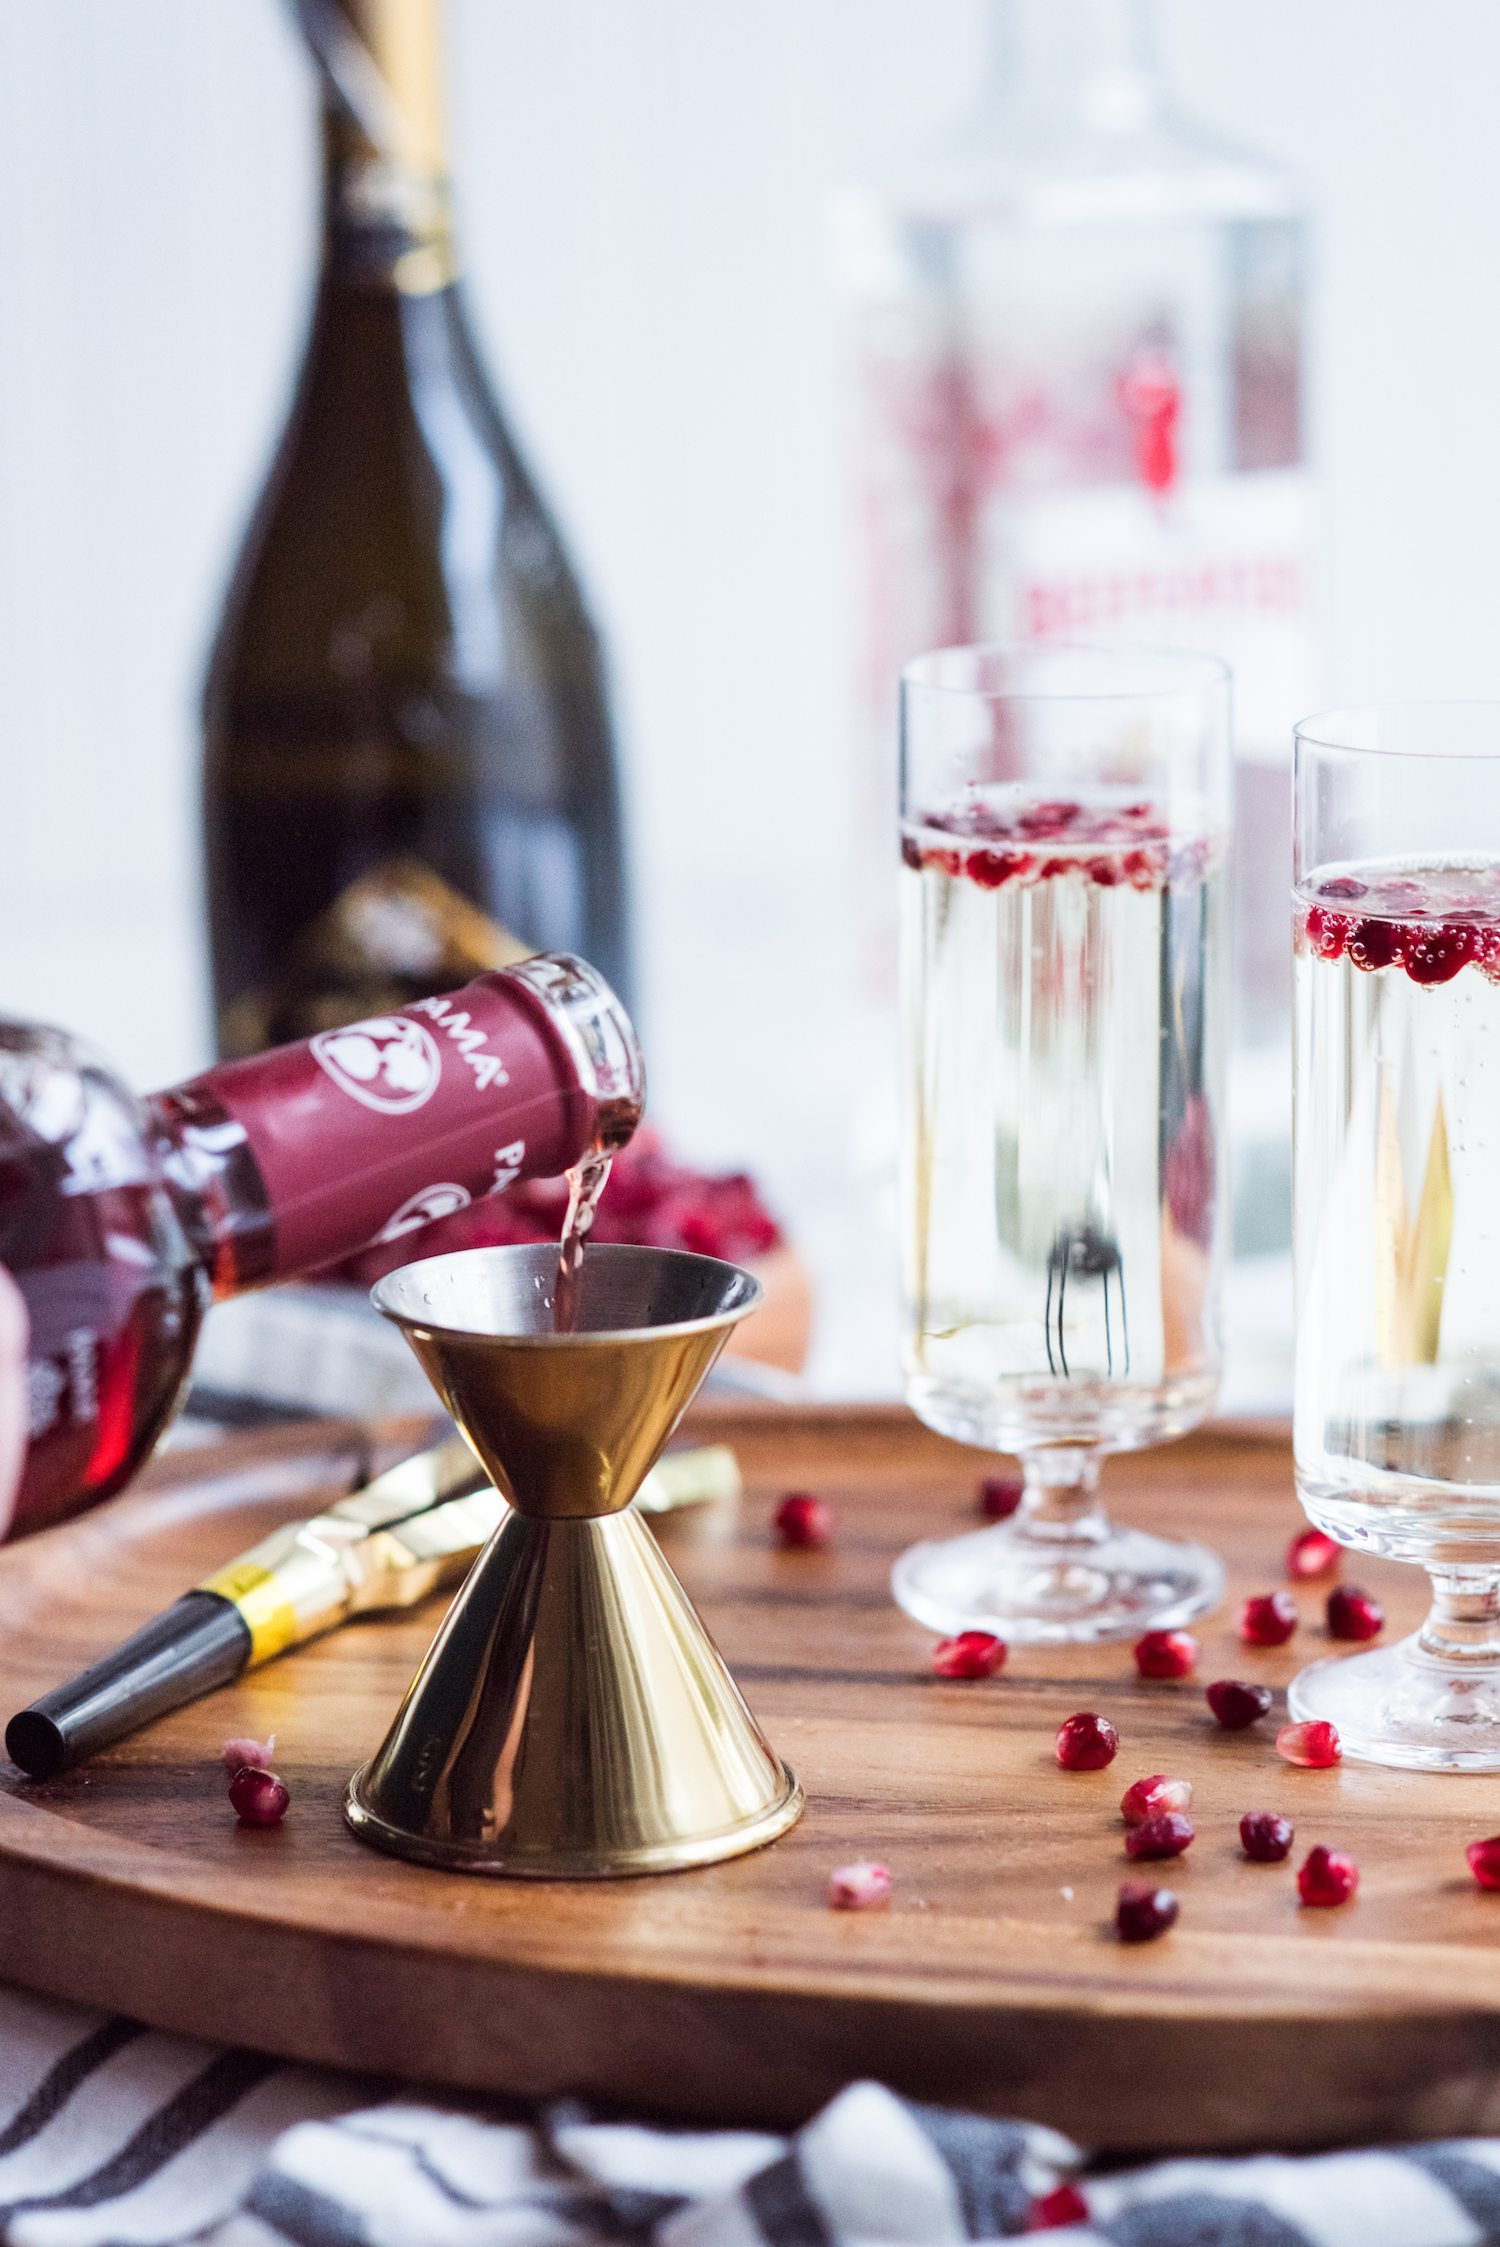 Sparkling Pomegranate French 75 Recipe | New Year's Eve cocktail recipes, entertaining tips, New Year's Eve party ideas and more from @cydconverse